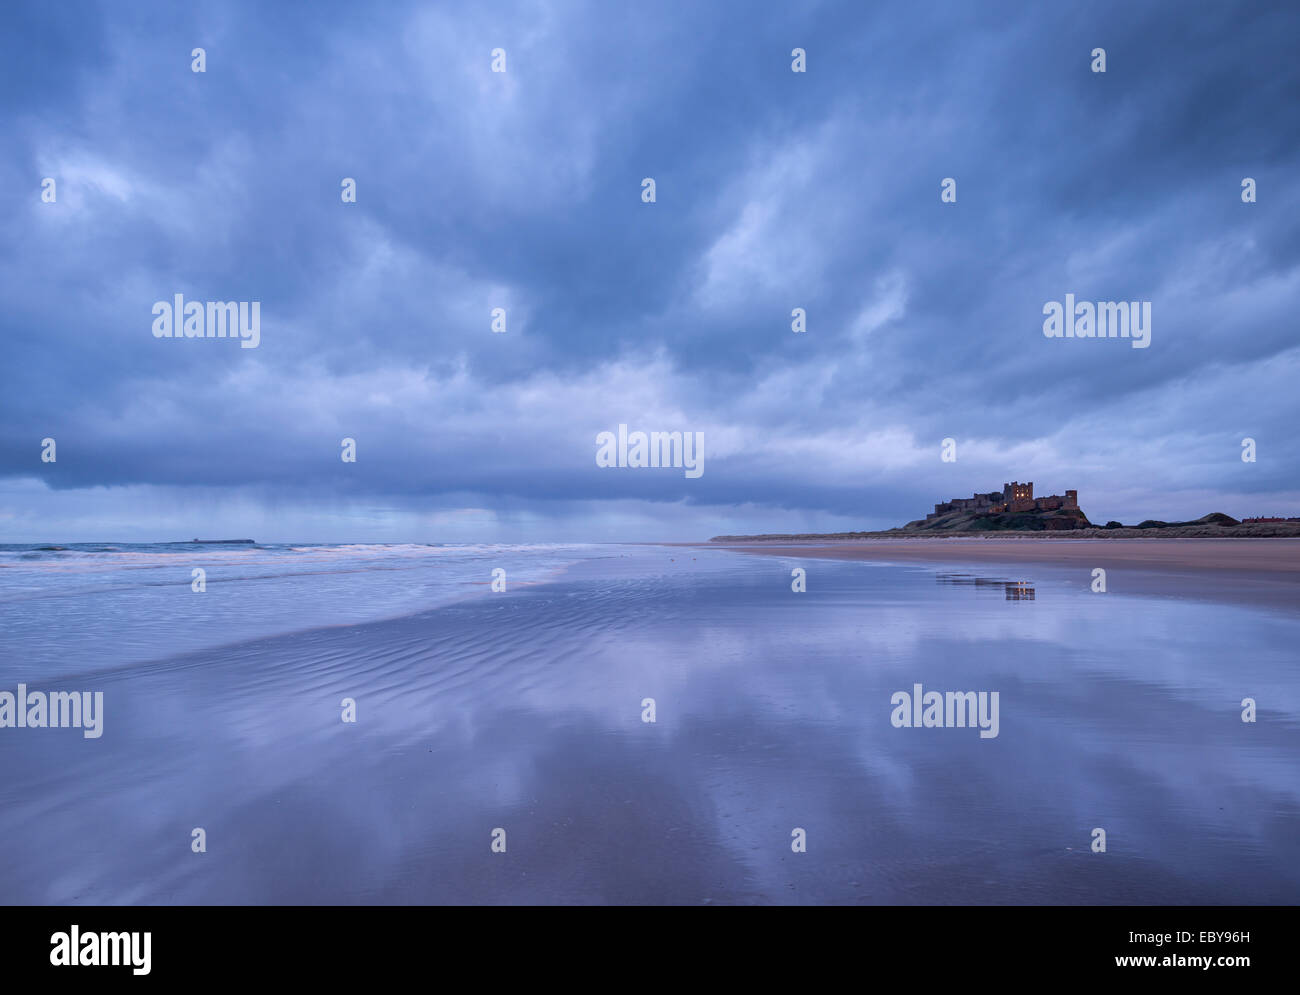 Stormclouds reflect on the deserted beach beside Bamburgh Castle, Northumberland, England. Winter (March) 2014. - Stock Image